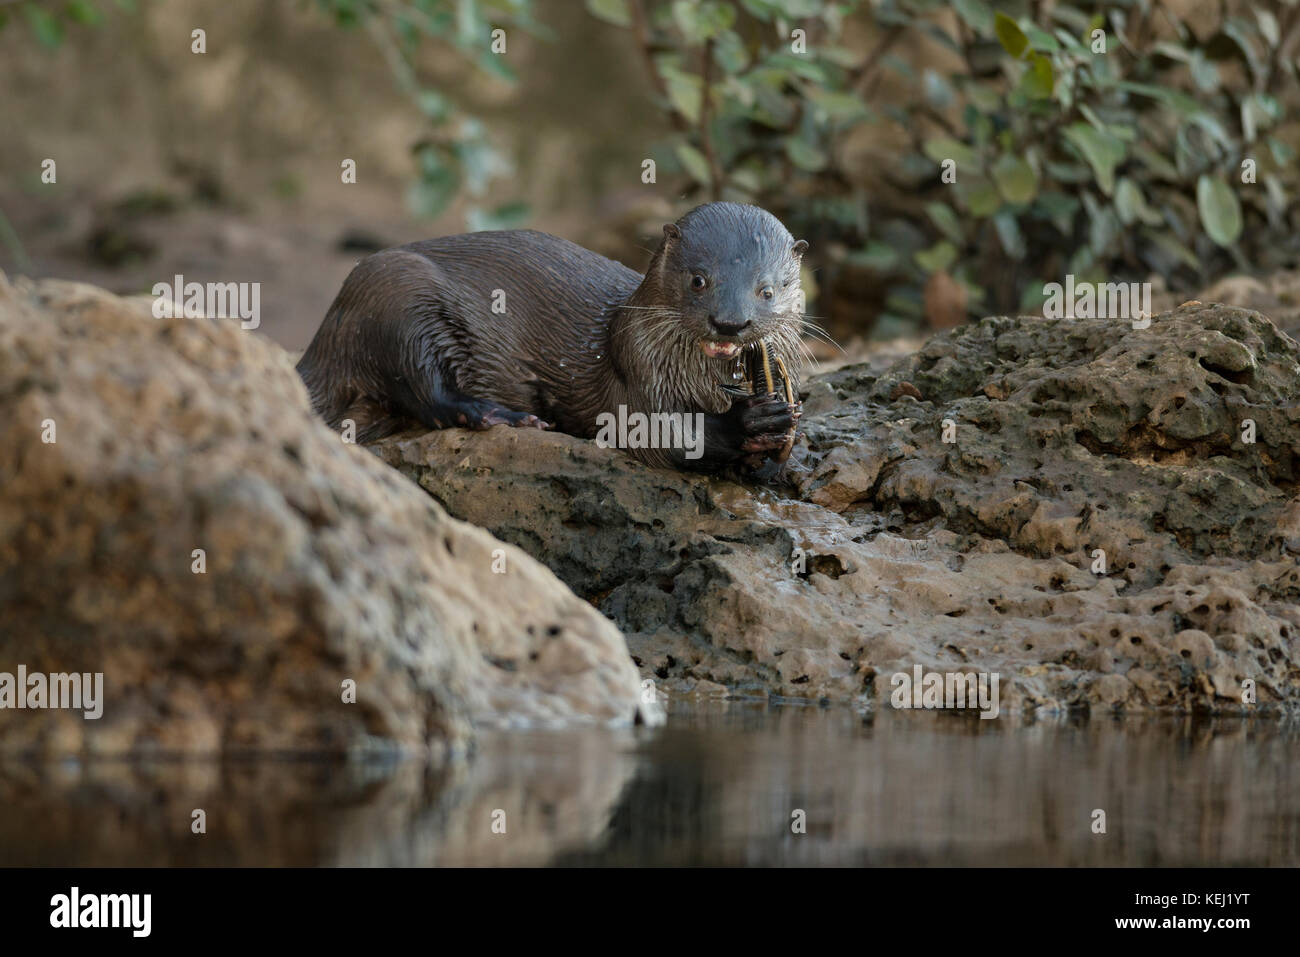 Neotropical River Otter eating a catfish in South Pantanal, Brazil - Stock Image